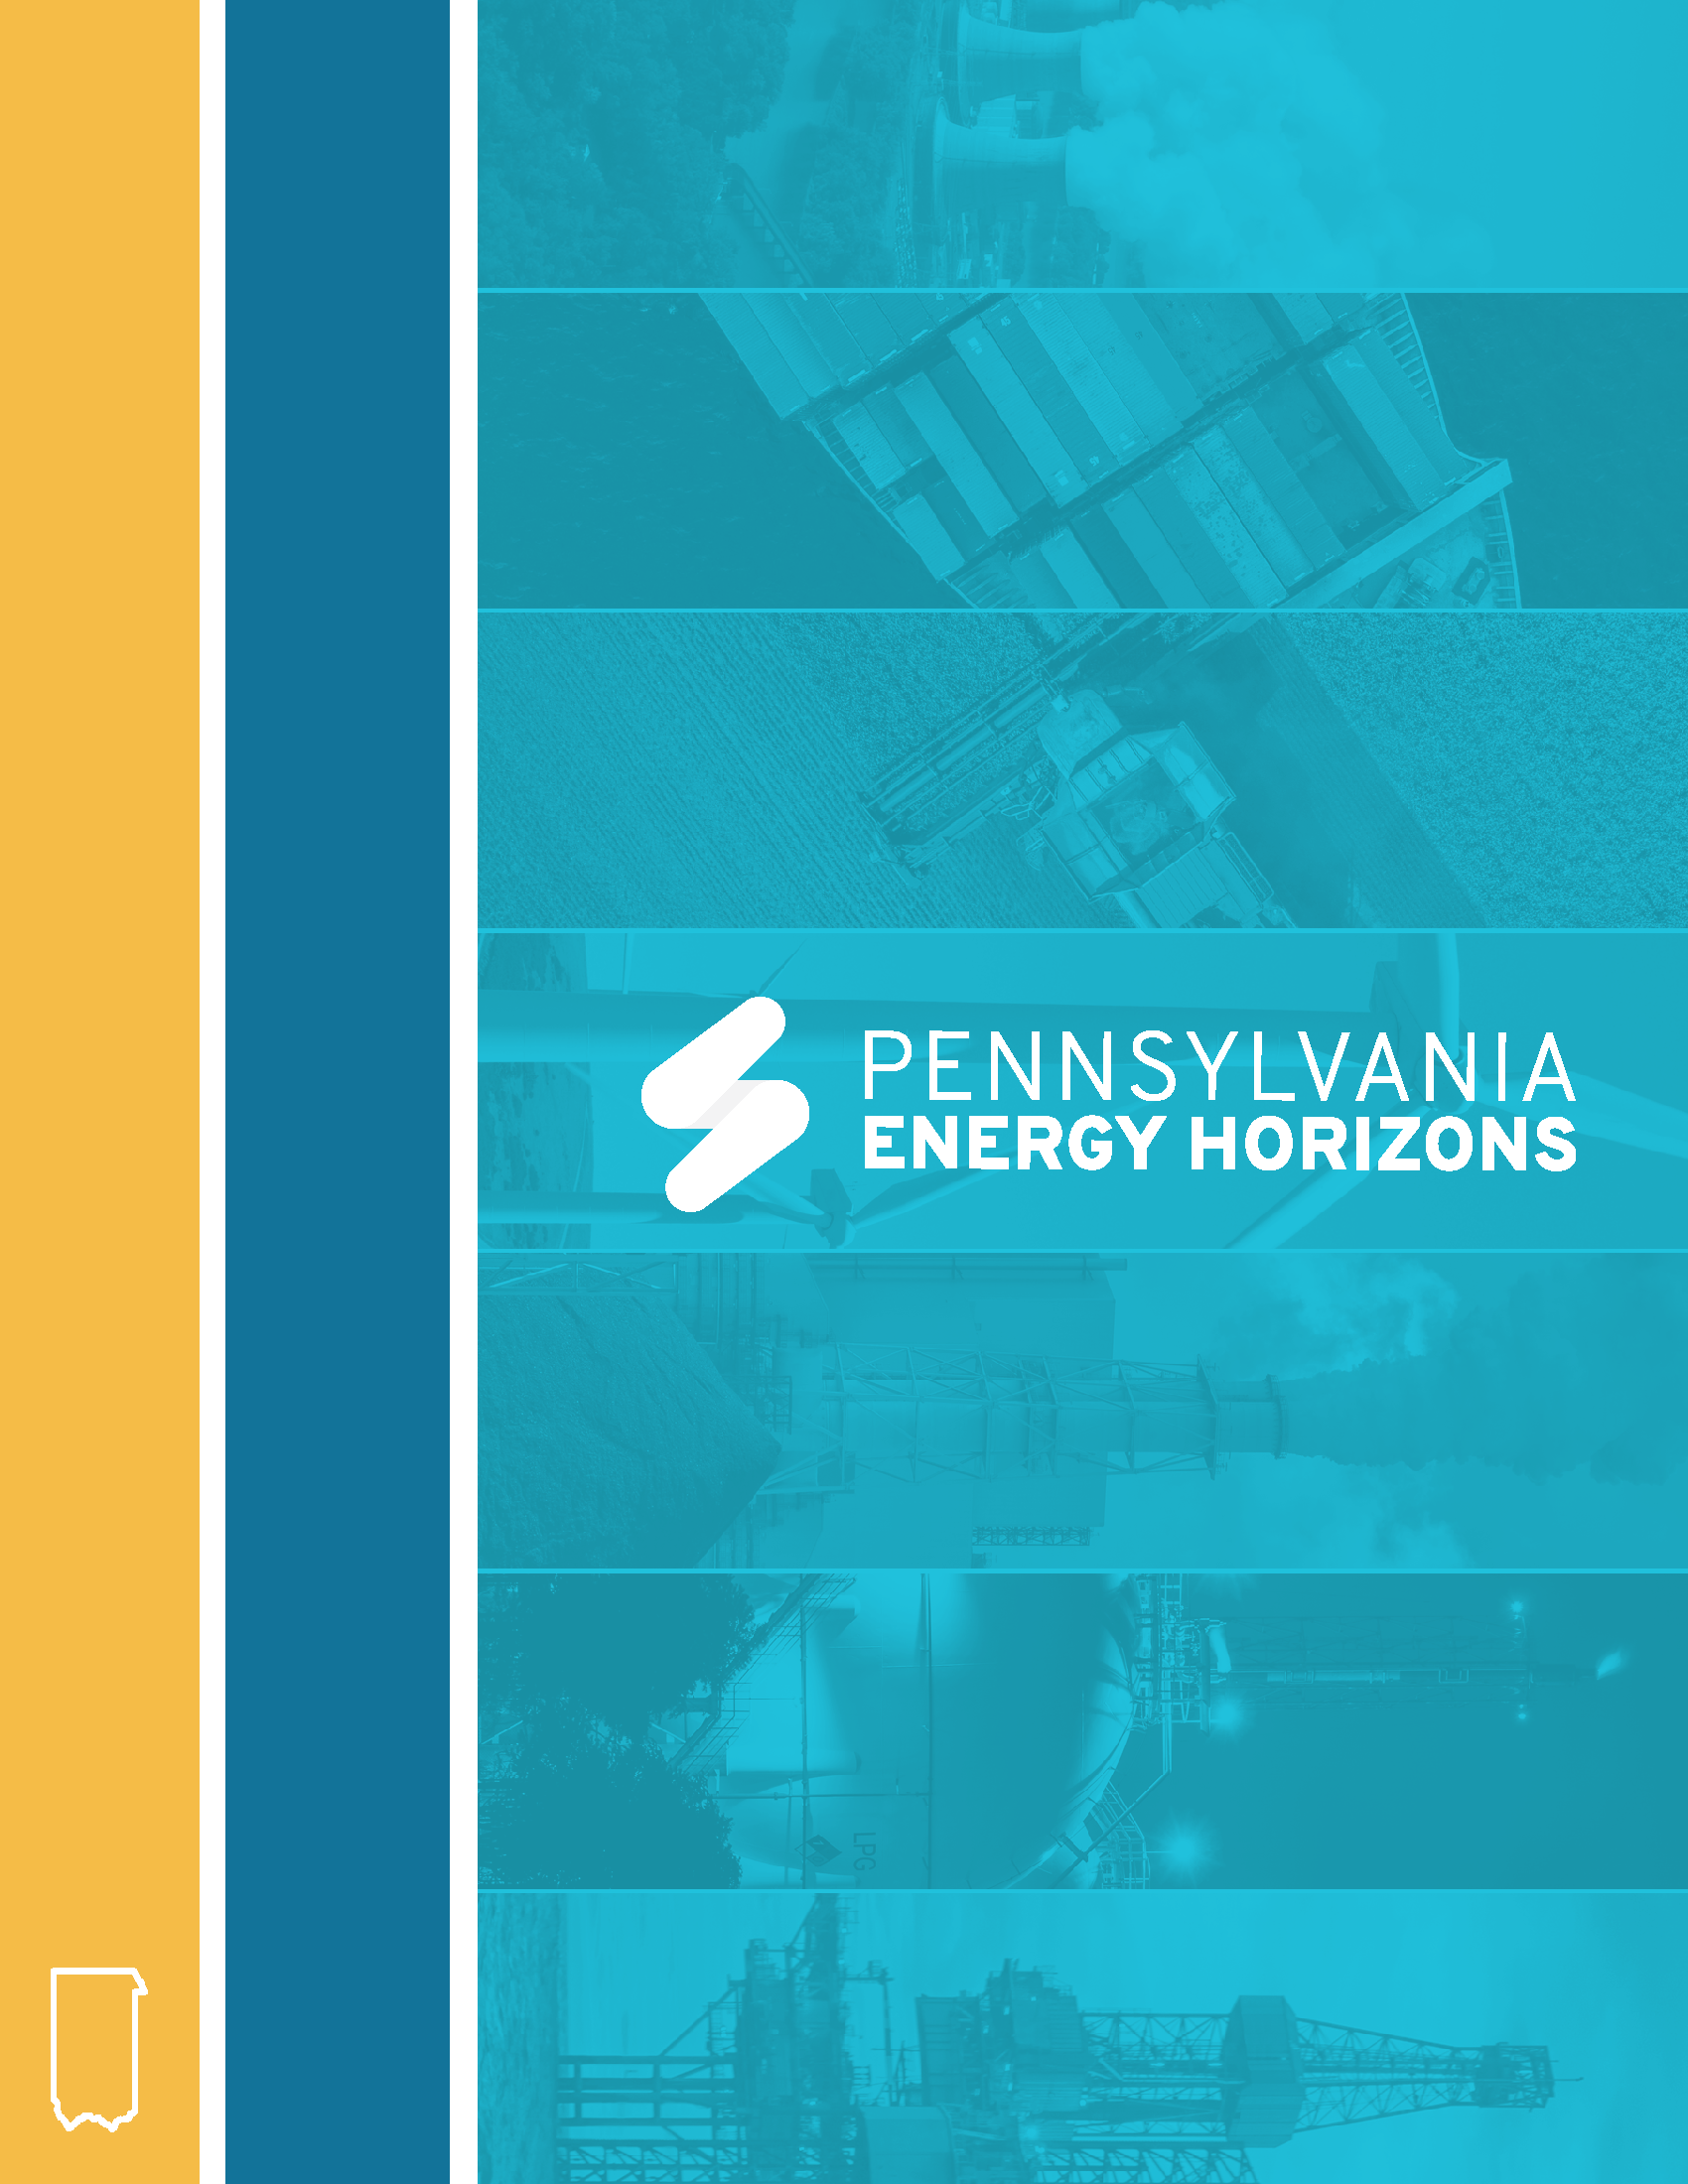 - For more information, contact:Ryan Unger, President & CEOTeam Pennsylvania717.233.1375…Denise Brinley, Executive Director, Governor's Office of EnergyPA Department of Community & Economic Development717.720.1307…info@PennsylvaniaEnergyHorizons.org